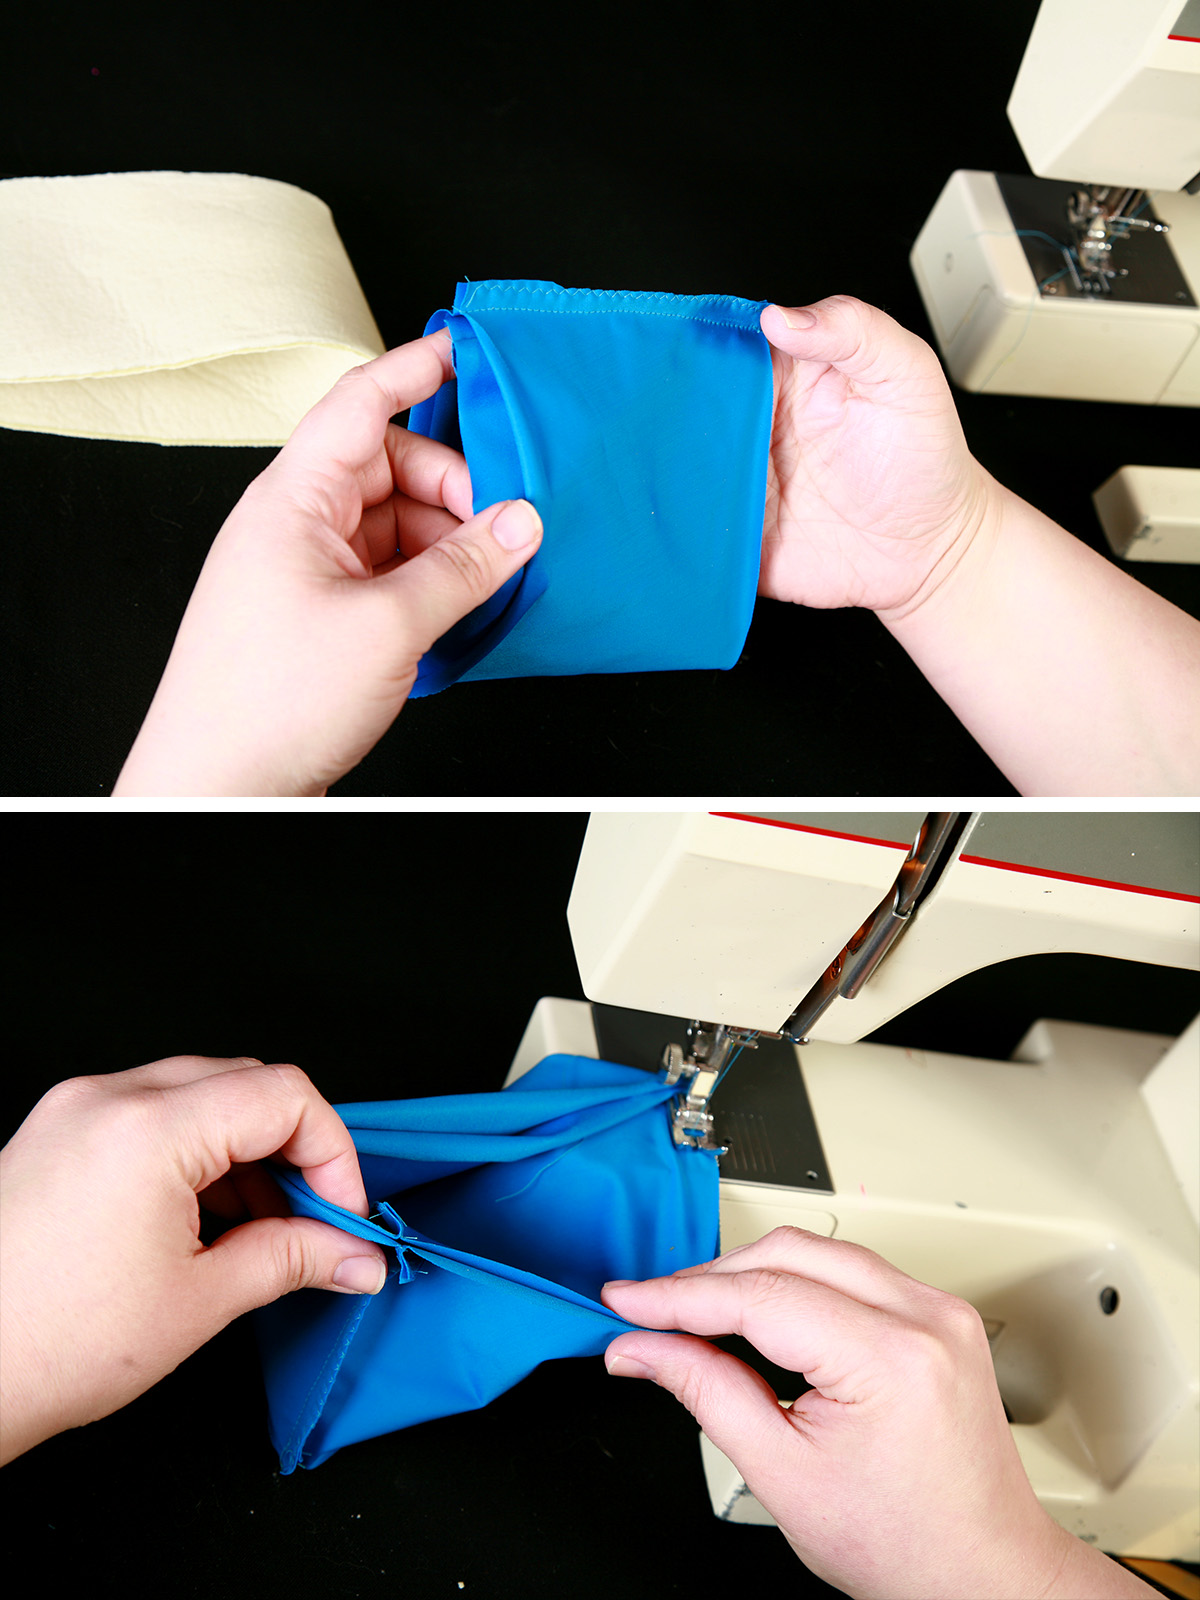 A two part compilation image showing two pieces of blue spandex being sewn to form a glove cuff.